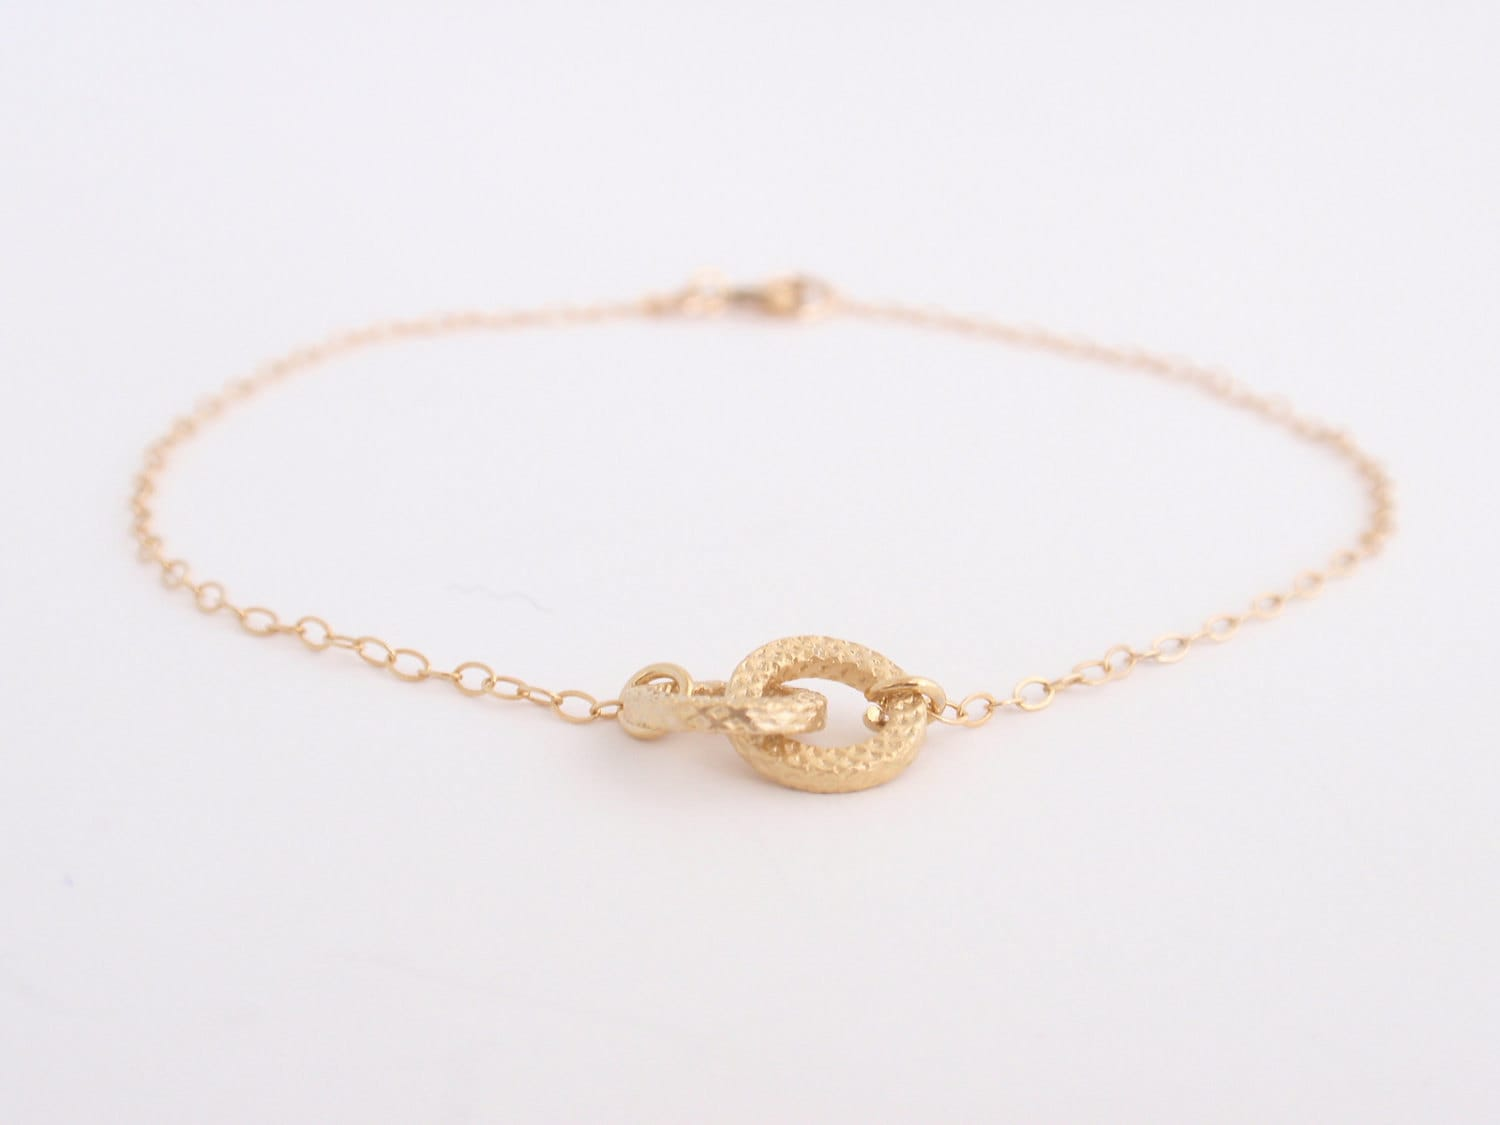 Tiny Infinity 14K gold filled bracelet-simple everyday jewelry